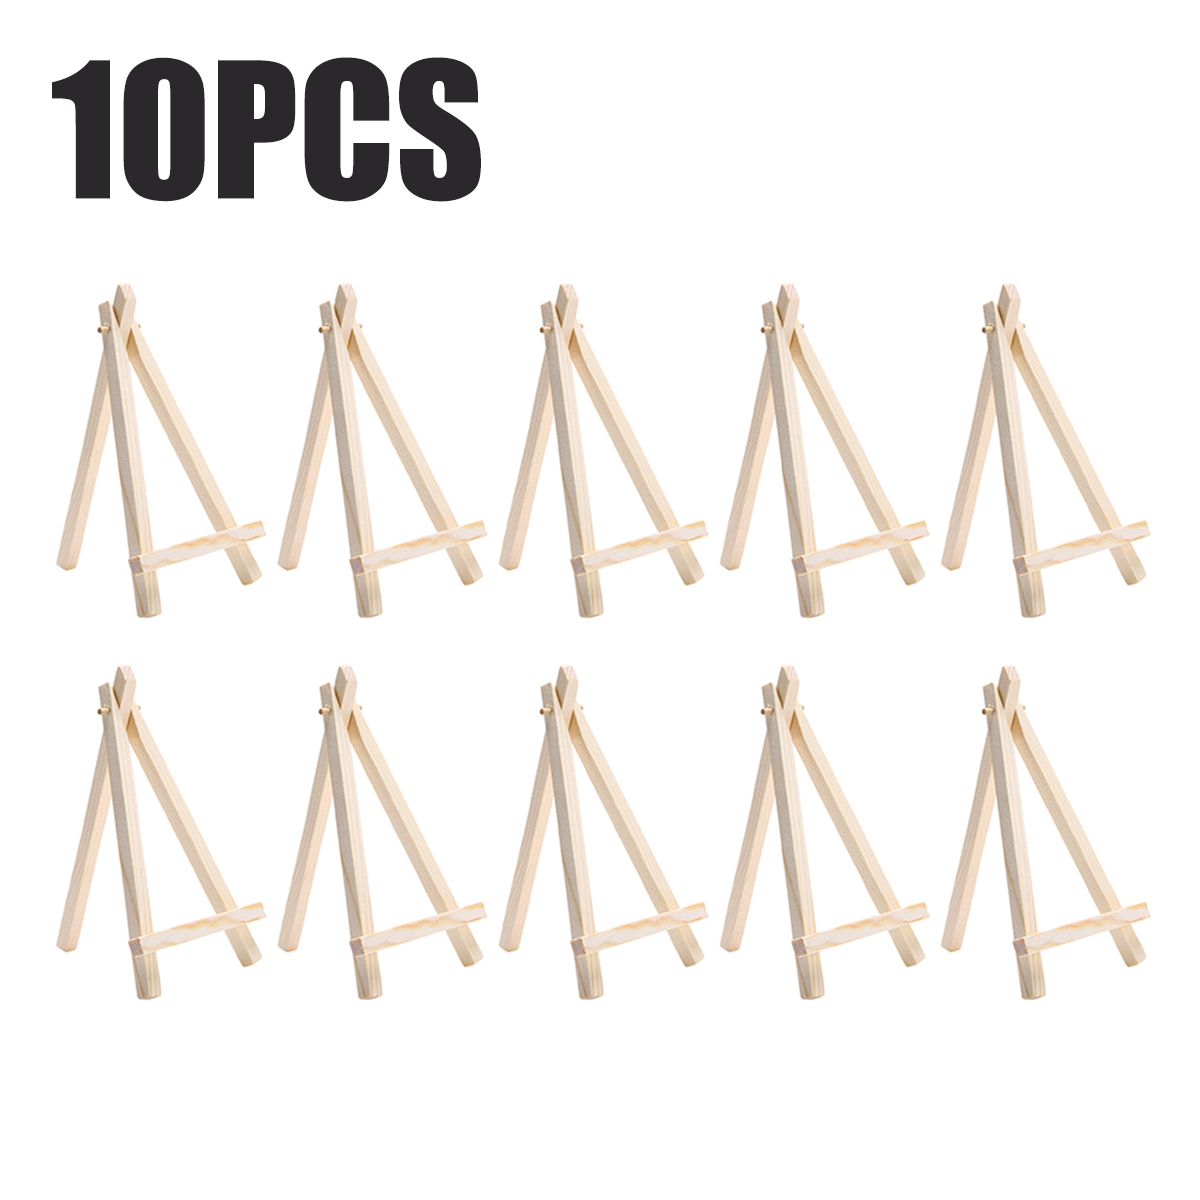 10pcs/set Wooden mini easel Stands Table Card Stand holder Small Picture Display Stand for Home Party Wedding Decoration10pcs/set Wooden mini easel Stands Table Card Stand holder Small Picture Display Stand for Home Party Wedding Decoration